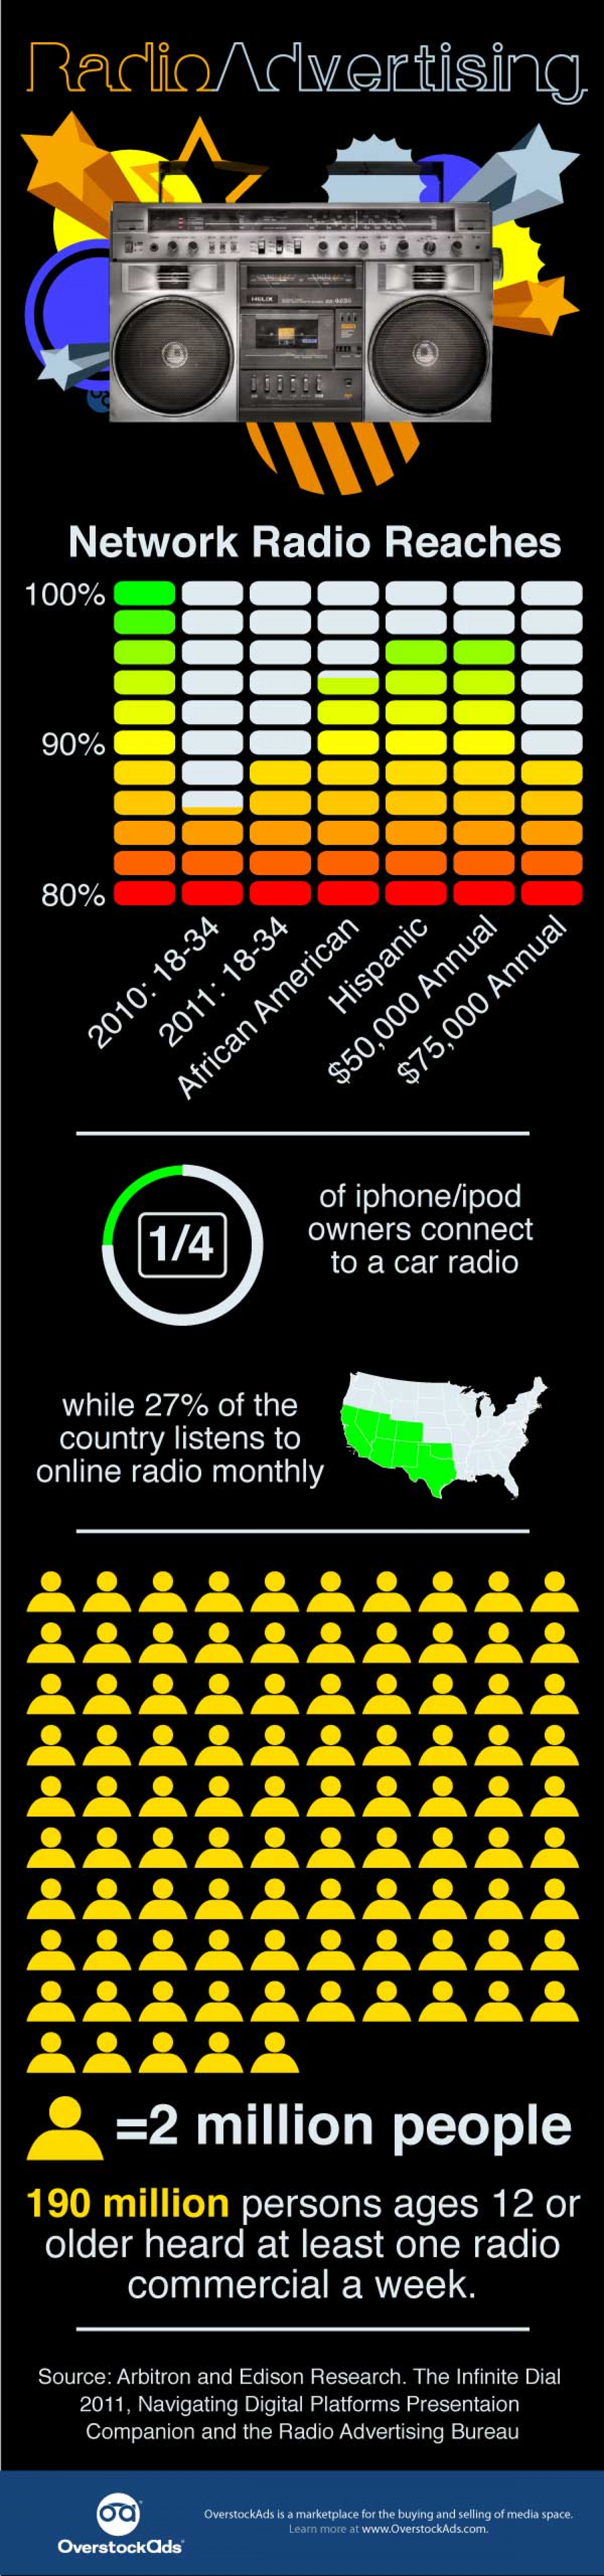 The Power of Radio Advertising Infographic